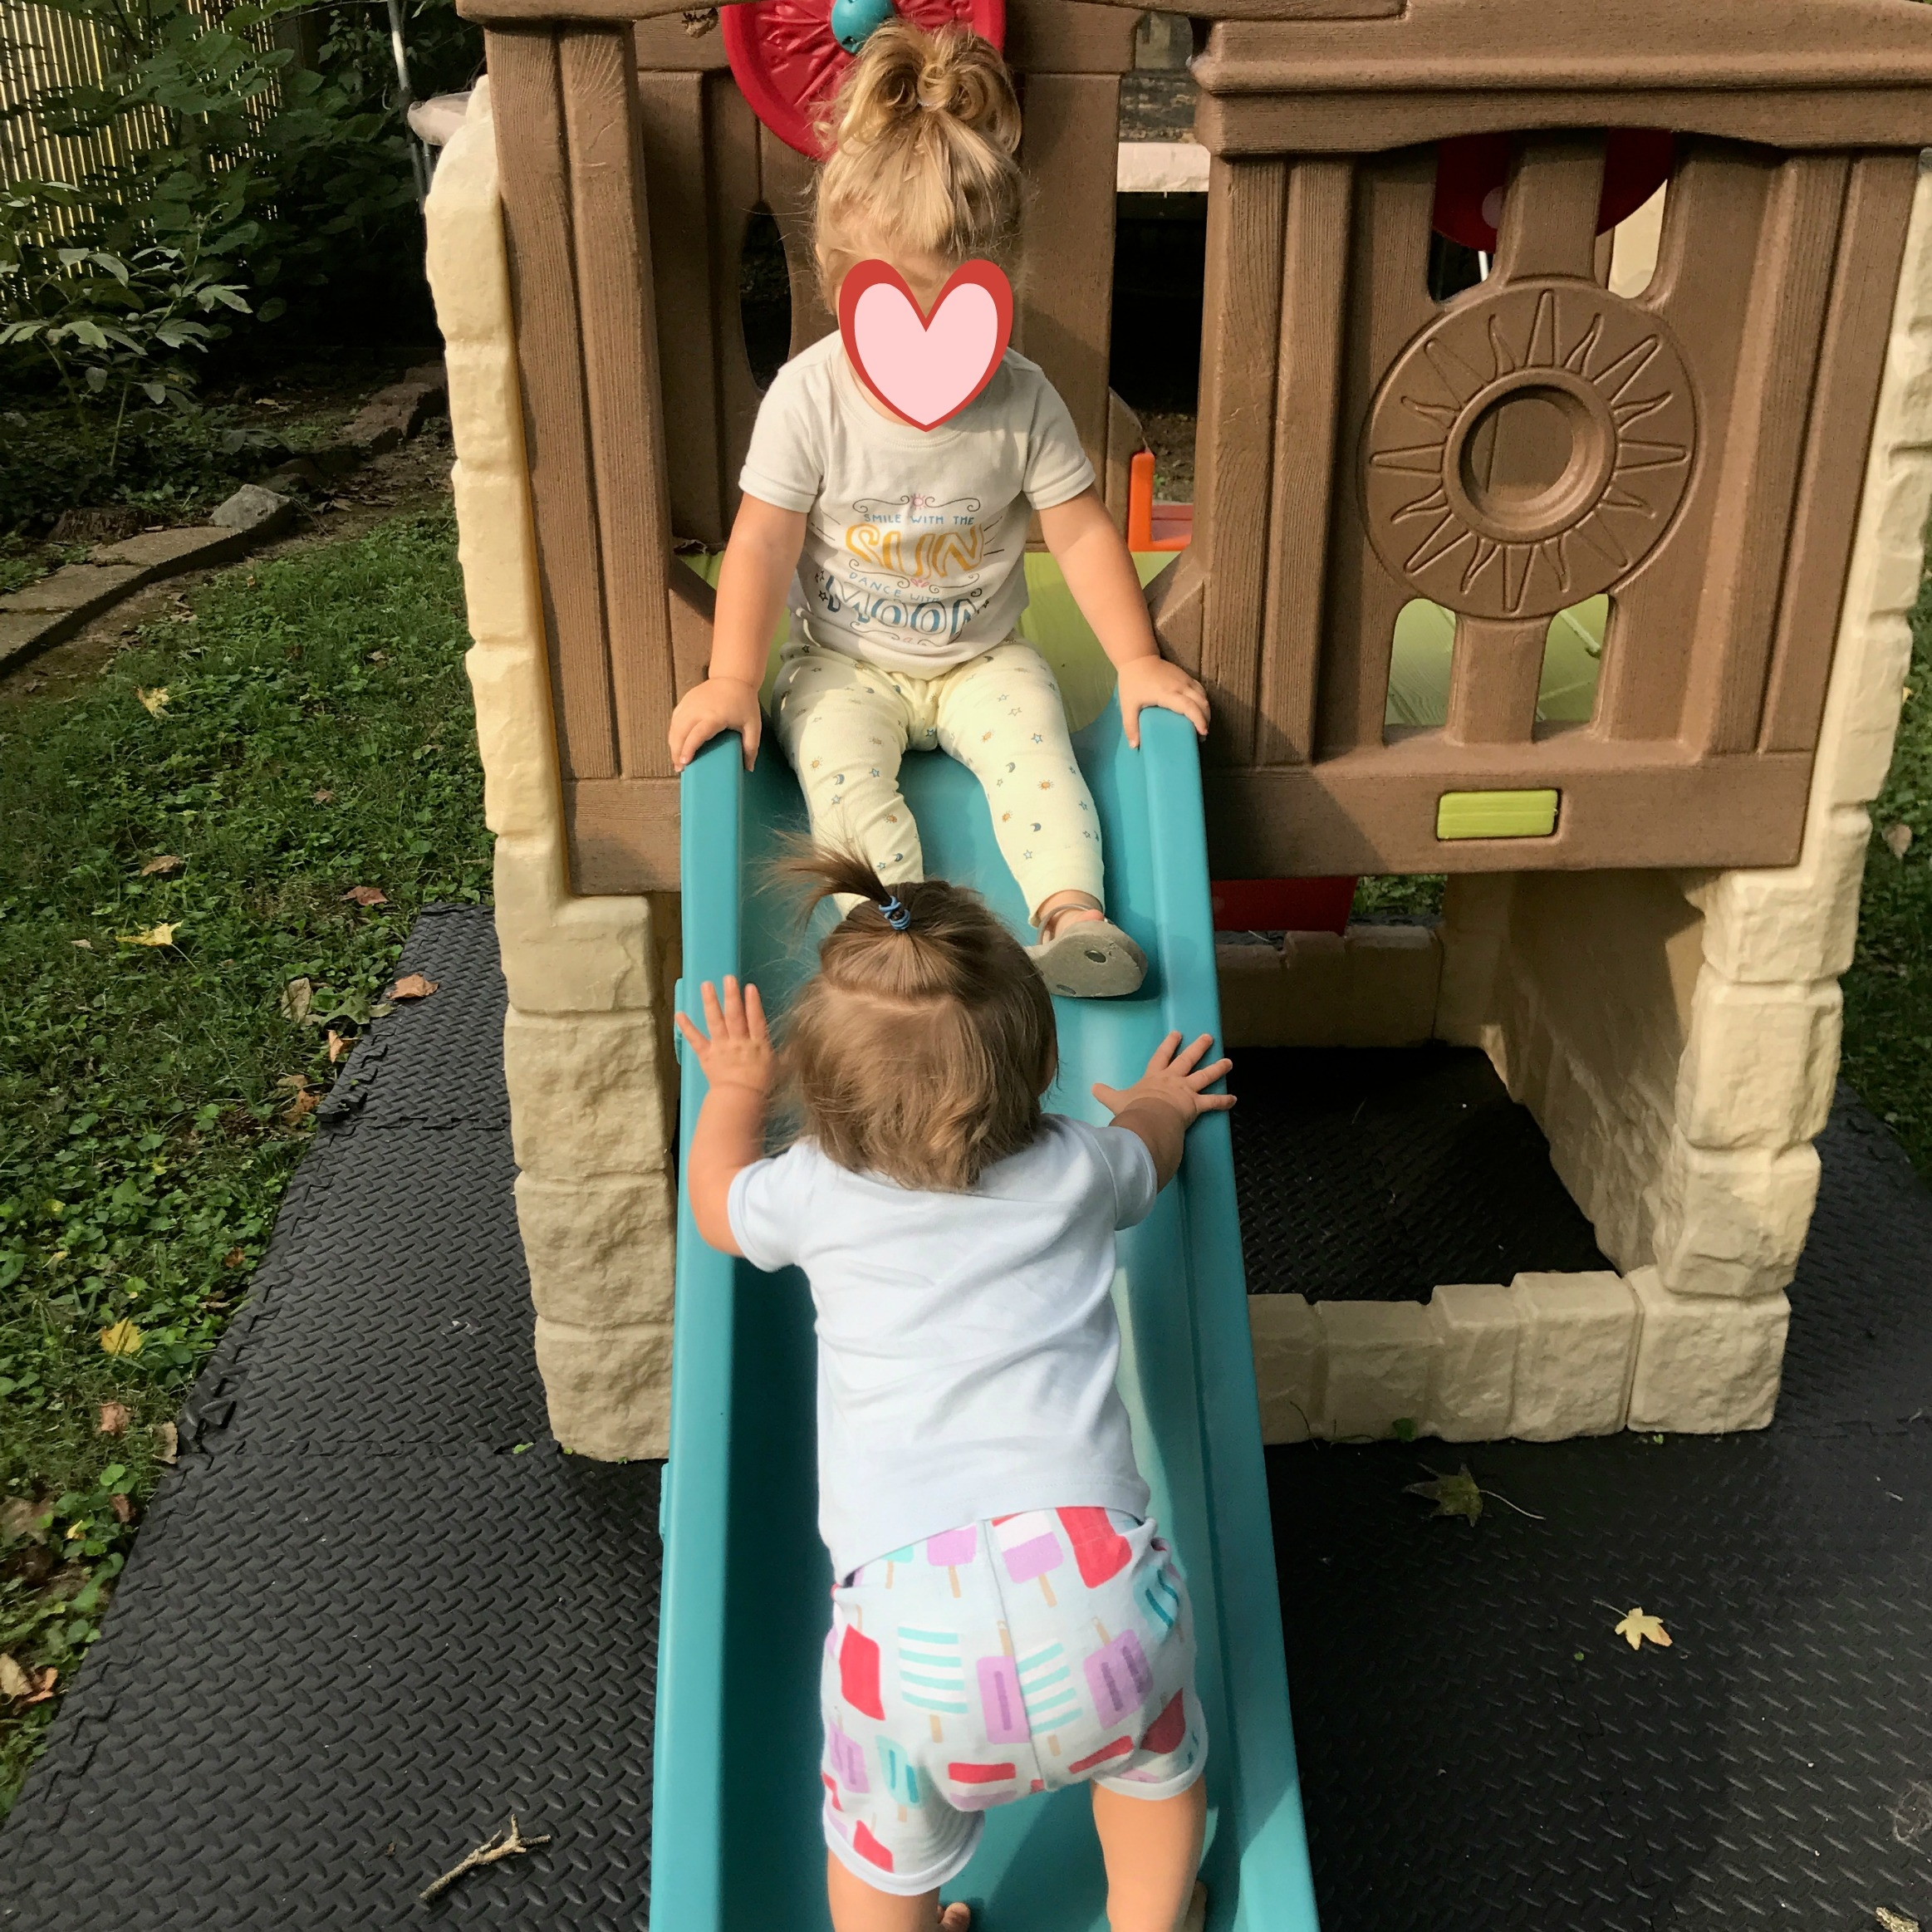 We bought a play structure for the backyard because F turned 2 in August, and E turns 1 in September. It's everyone's favorite thing.